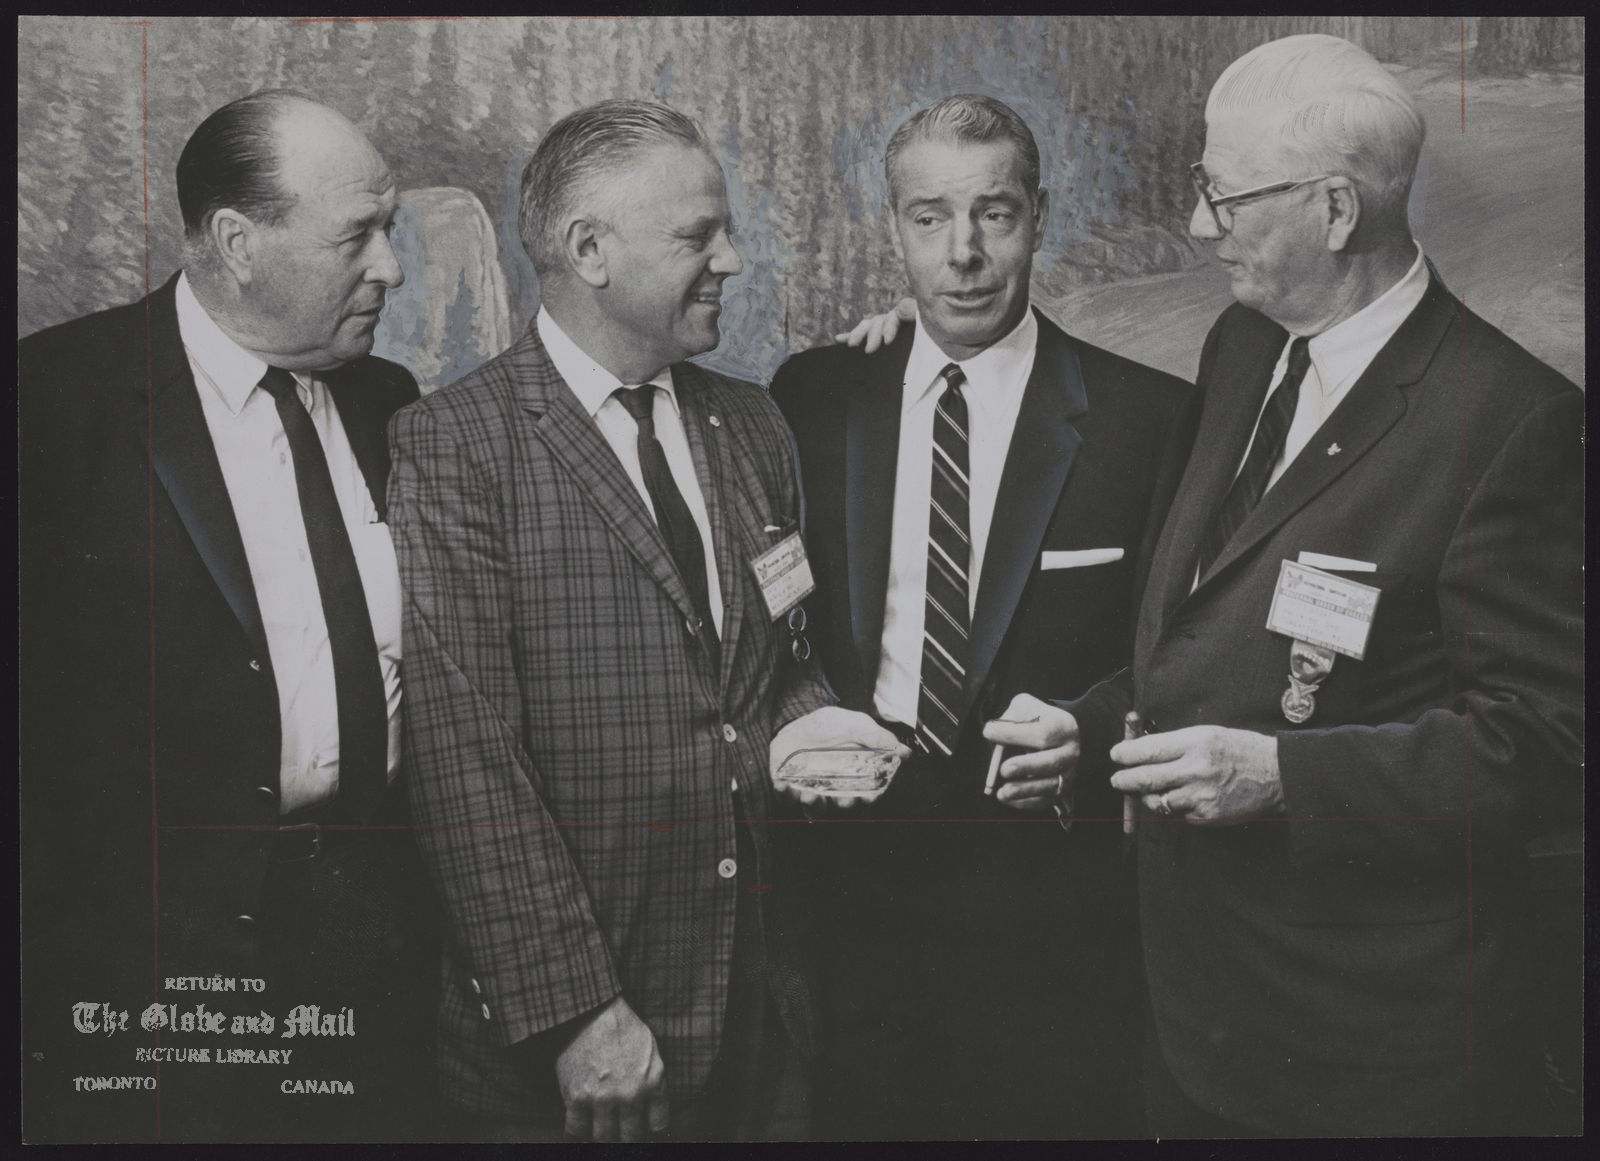 Joe DiMAGGIO Baseball Talk was about baseball when this group of former stars got together at the Eagels luncheon yesterday at the RY Hotel. From left: Lefty O'Doul, Eric Tipton, Joe DiMaggio and Lefty Grove.